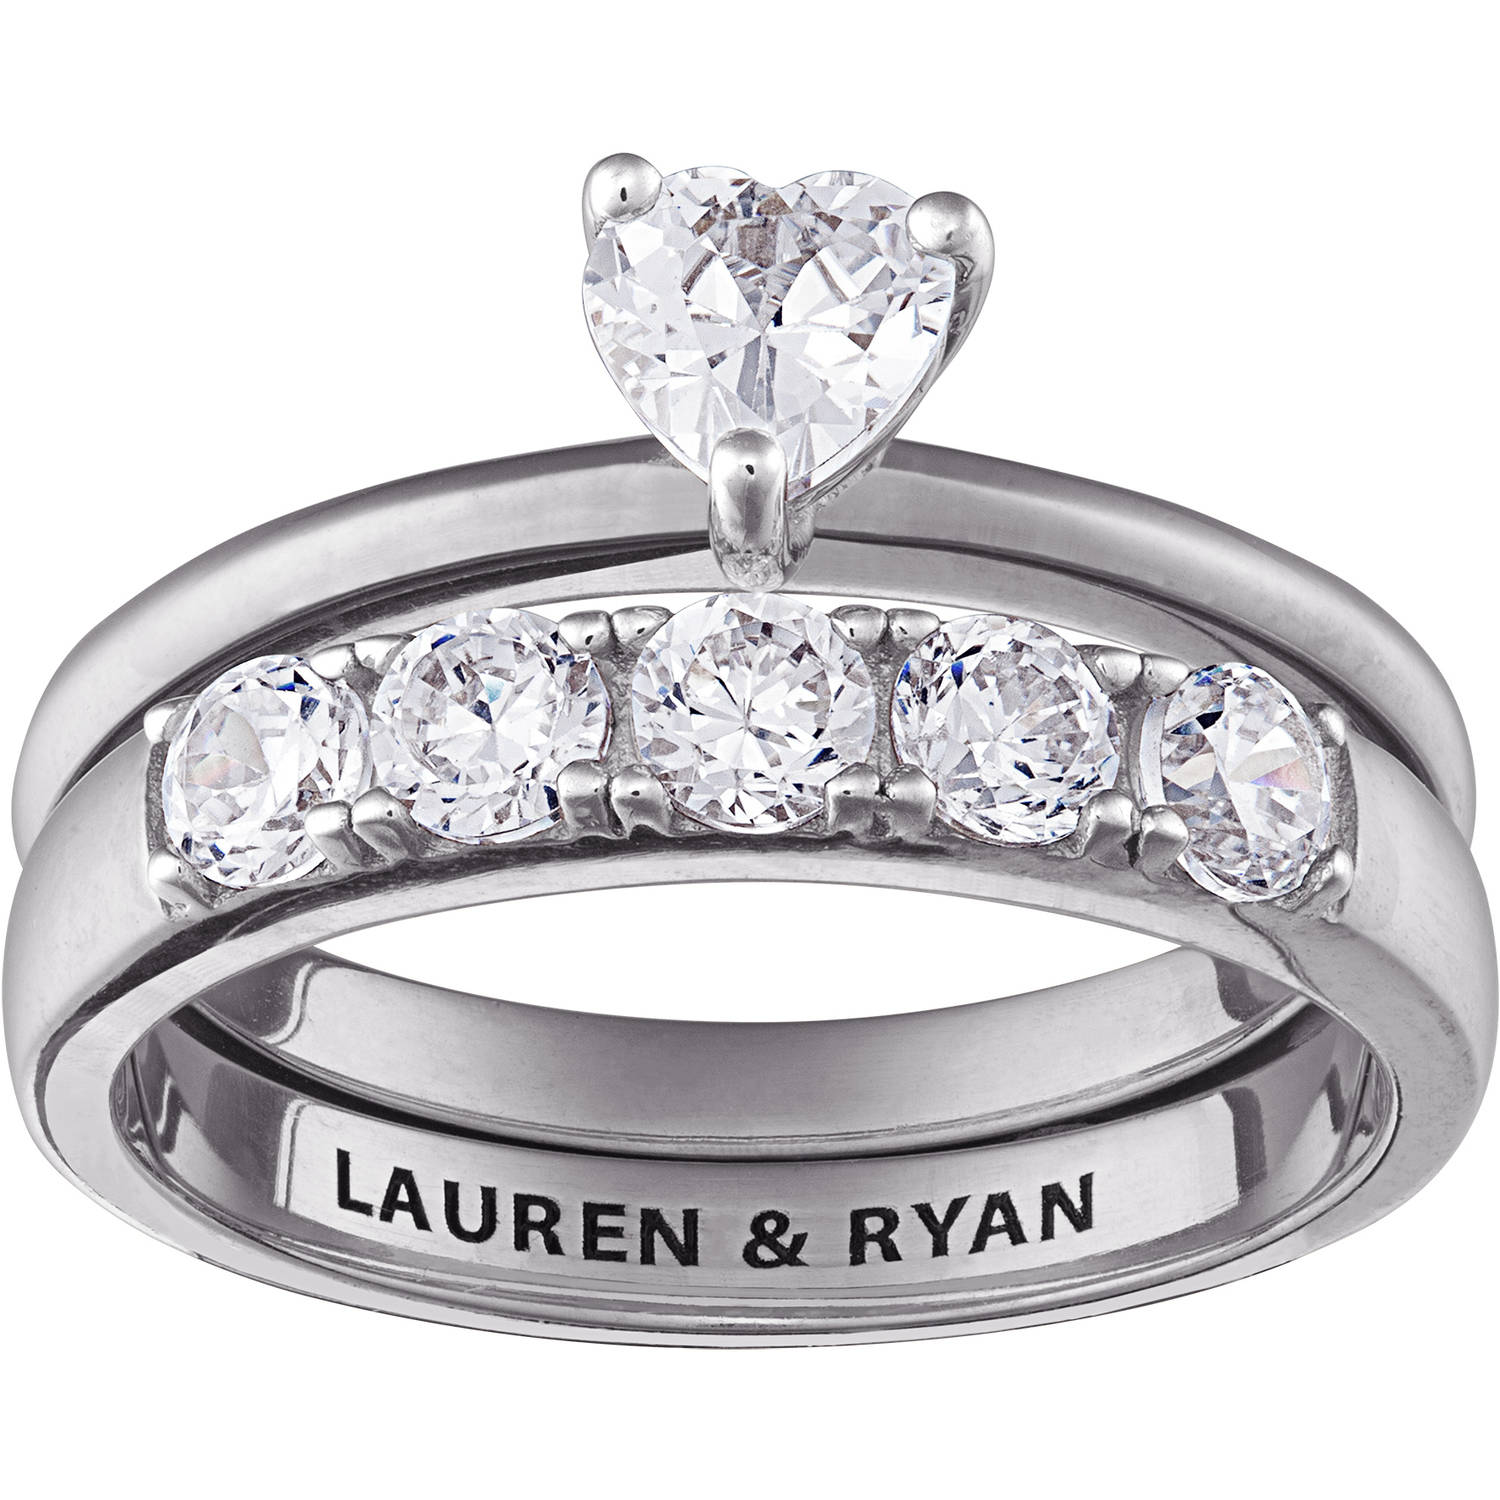 Personalized Women's Sterling Silver Heart Of Love Engraved Wedding Ring Set